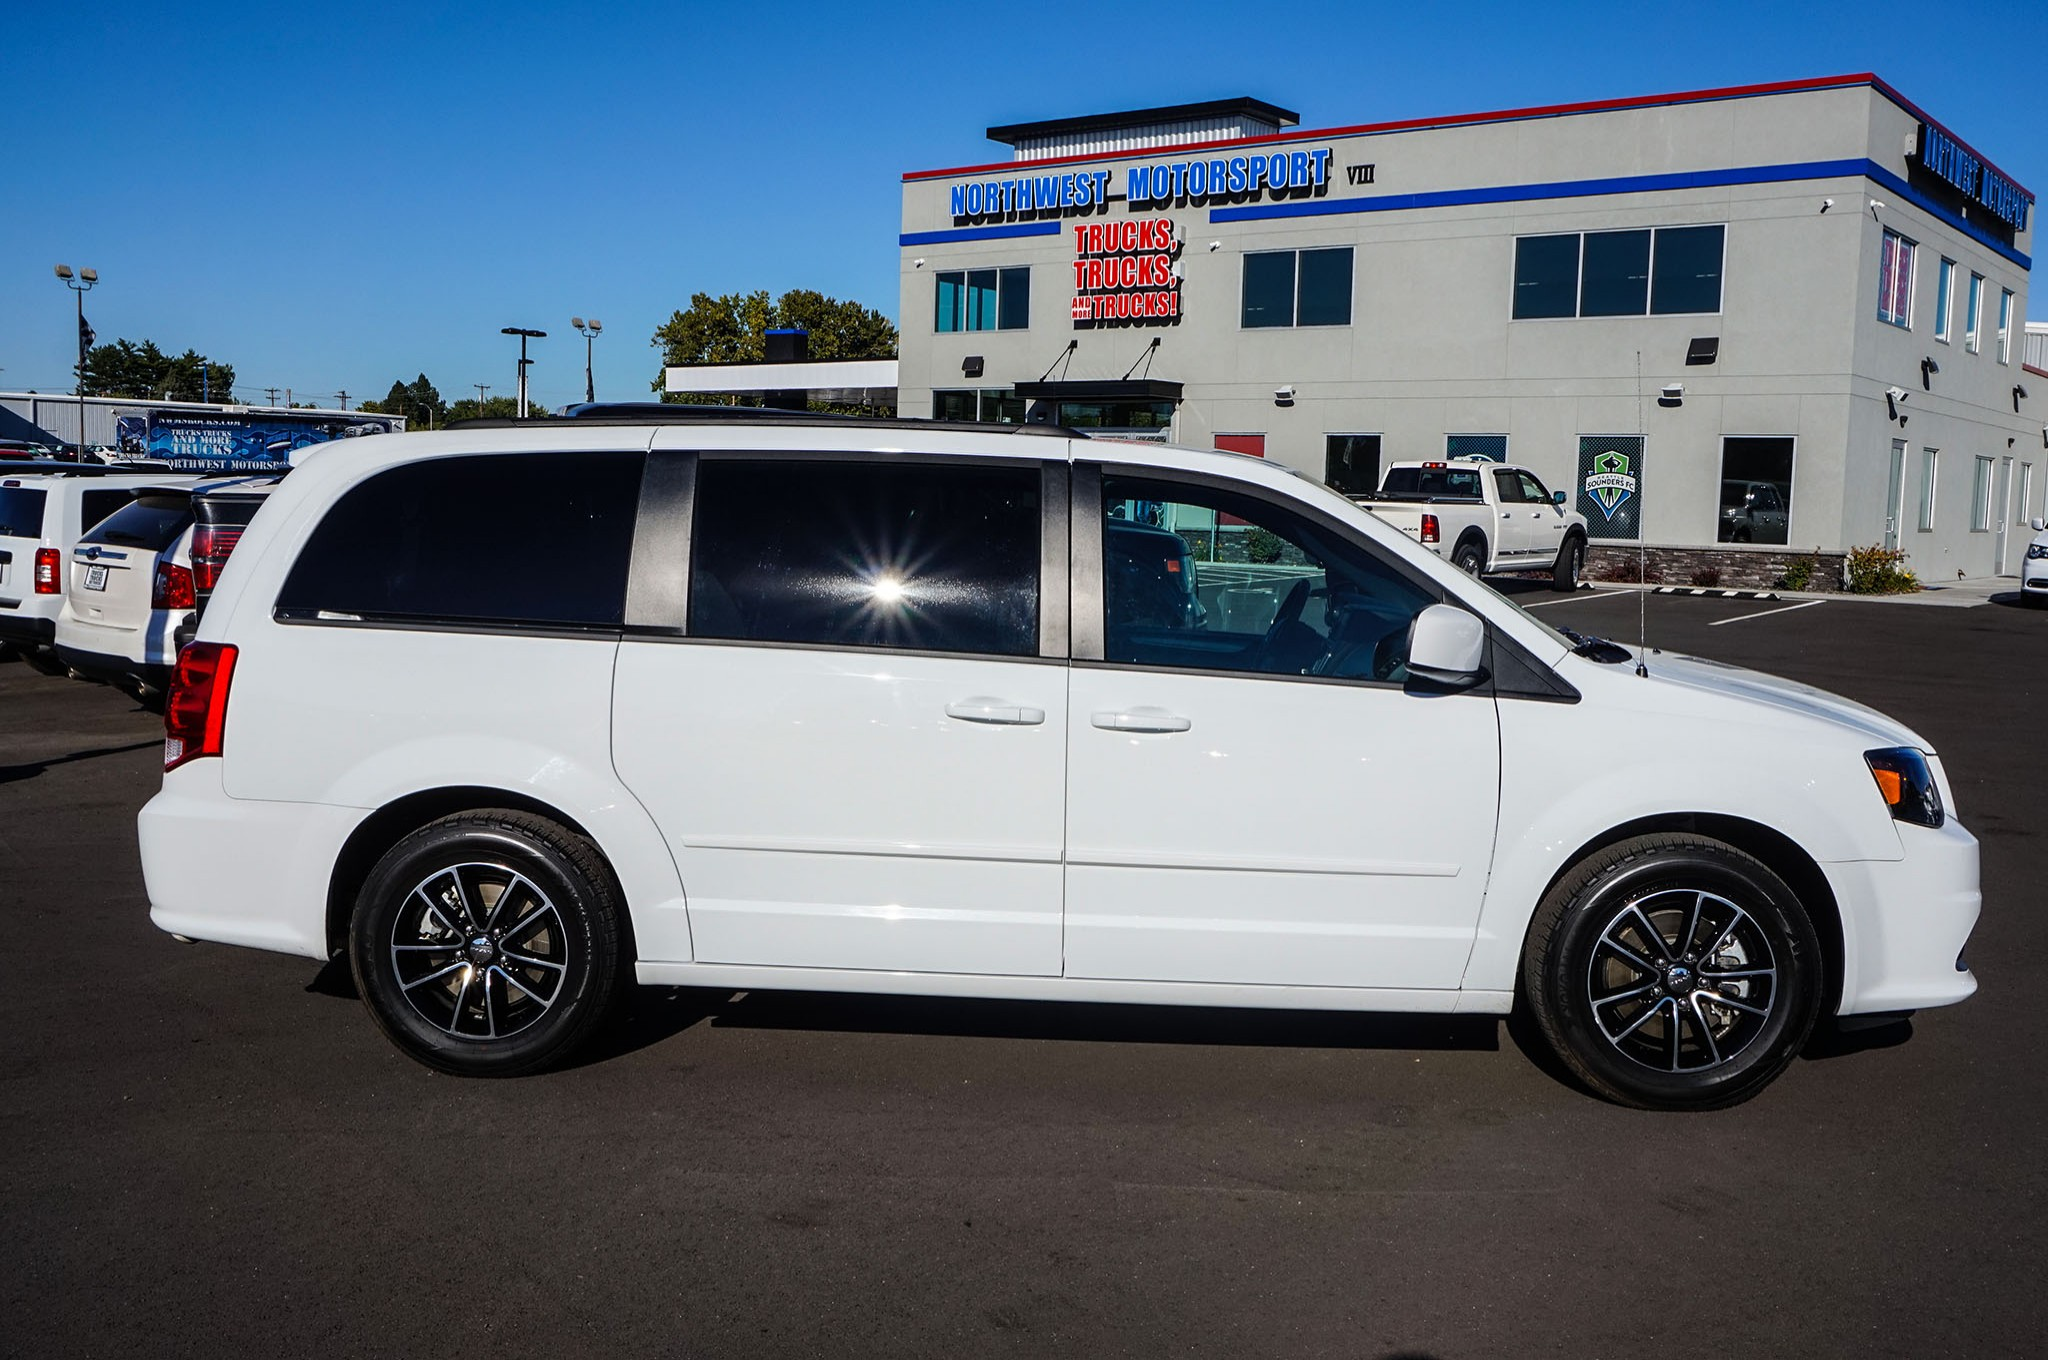 used 2016 dodge grand caravan rt fwd minivan van for sale 34532. Black Bedroom Furniture Sets. Home Design Ideas